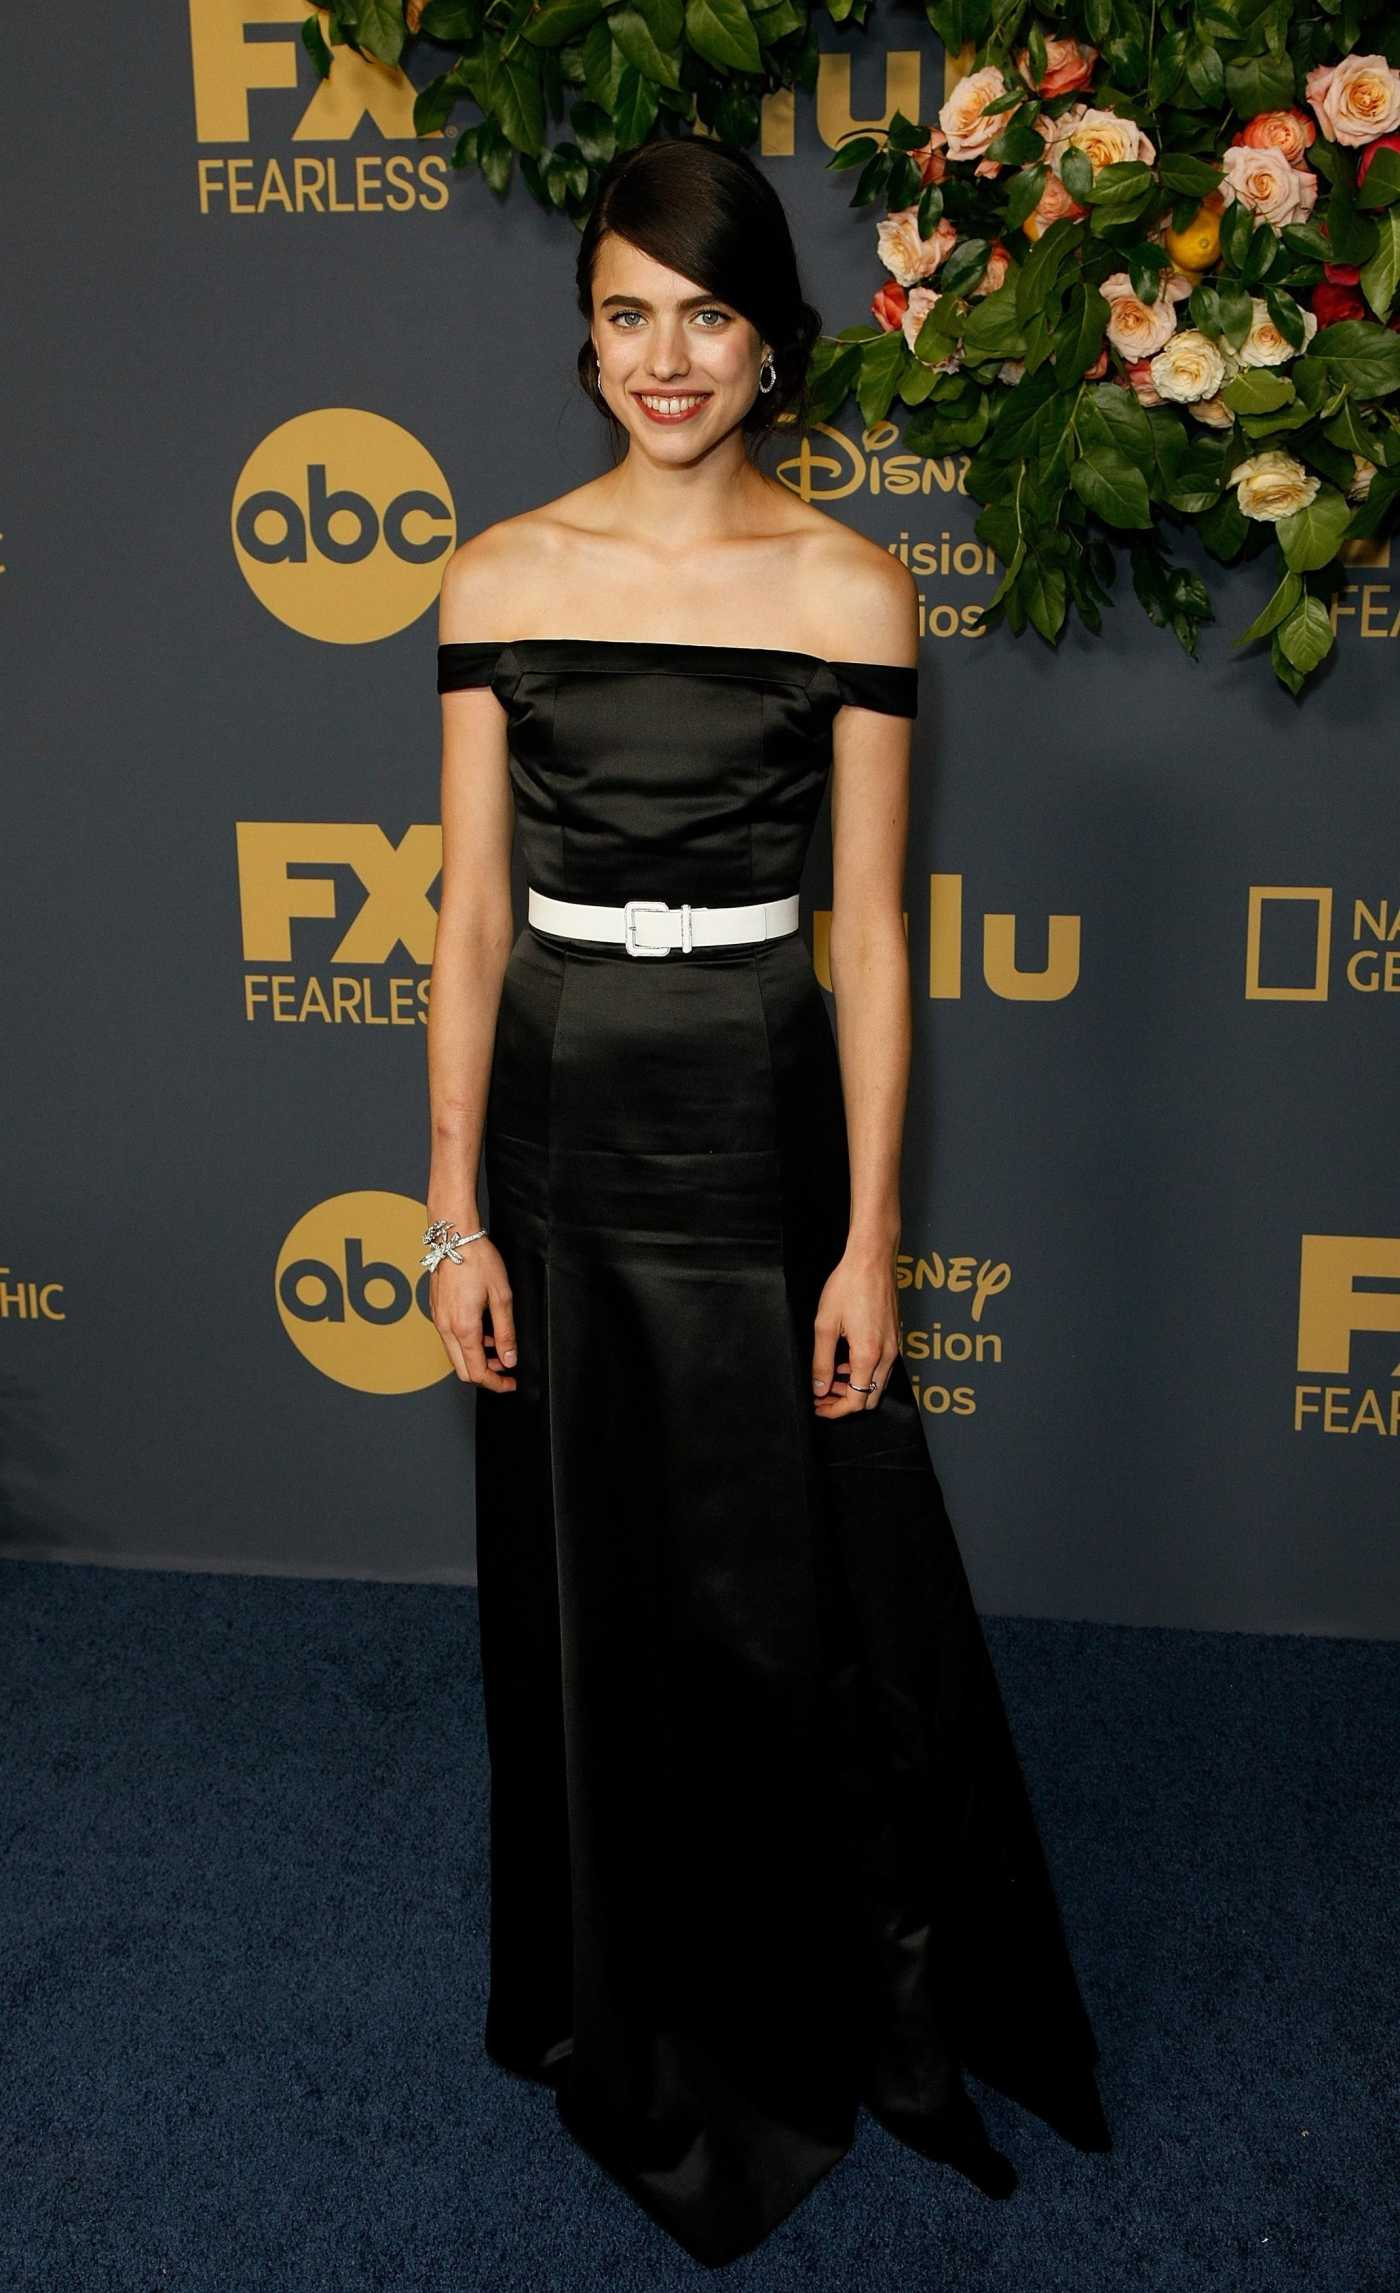 Margaret Qualley Attends the Walt Disney Television Emmy Party in LA 09/22/2019